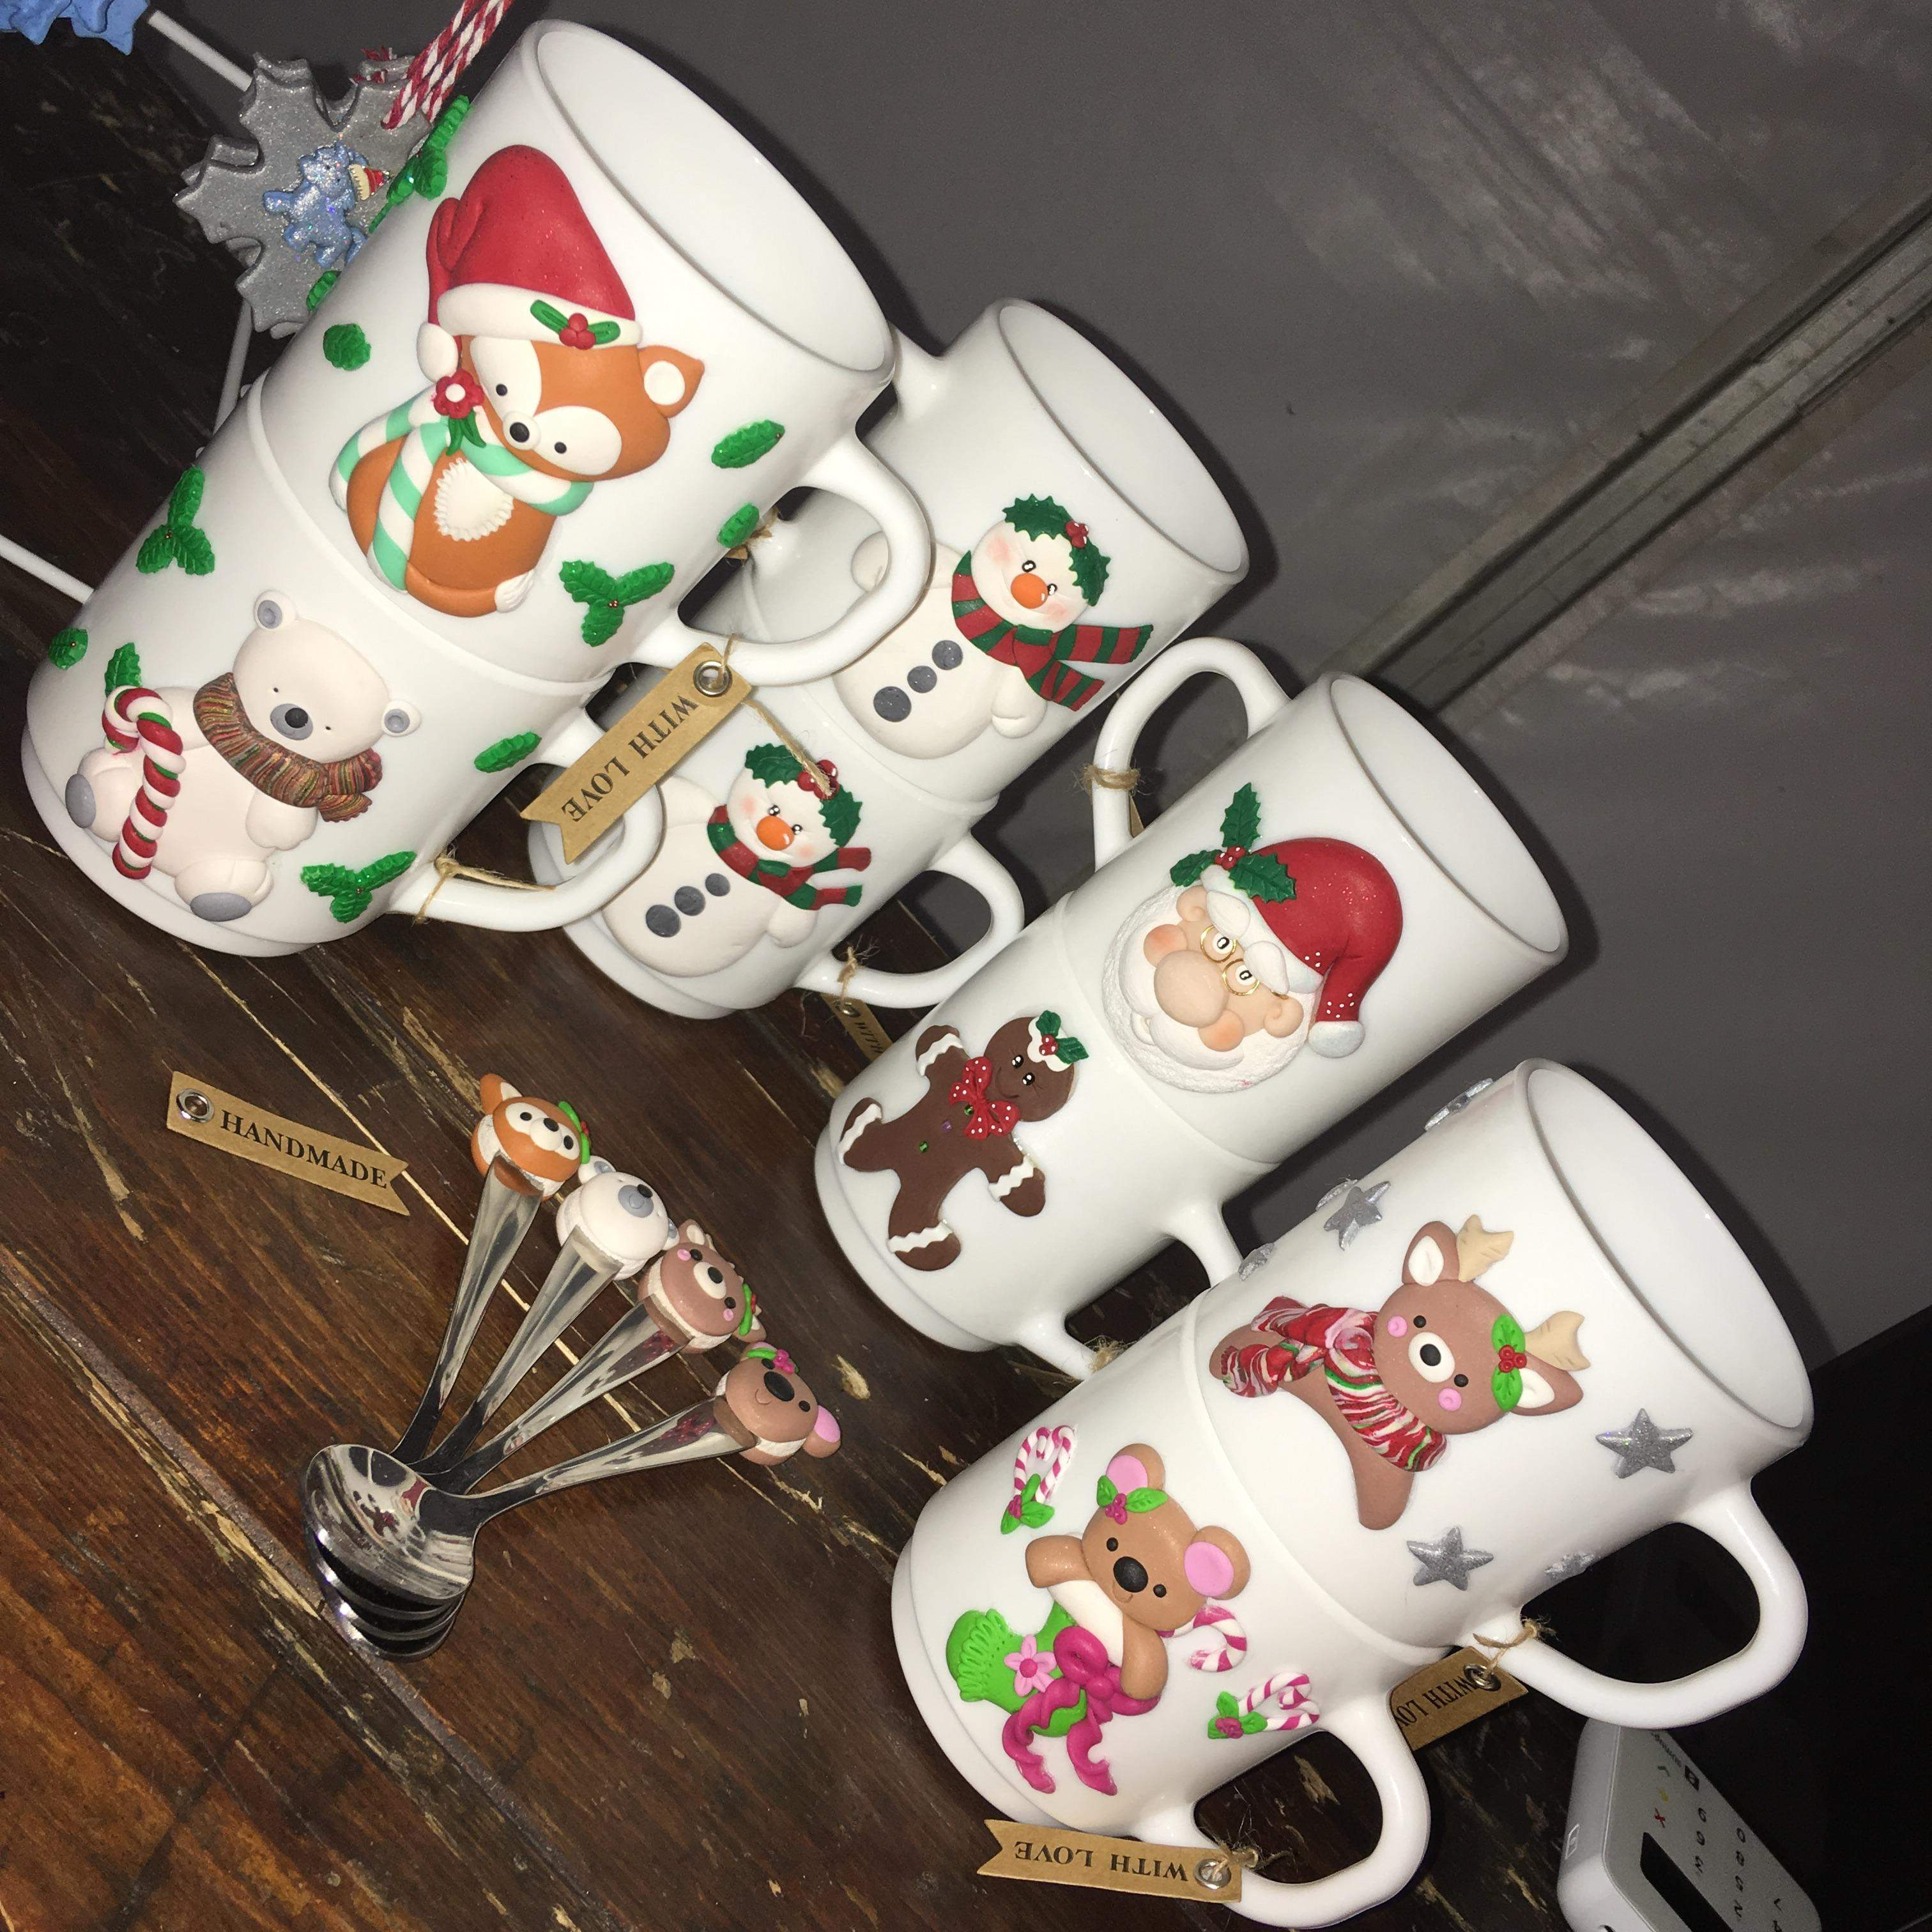 Mug and spoon sets